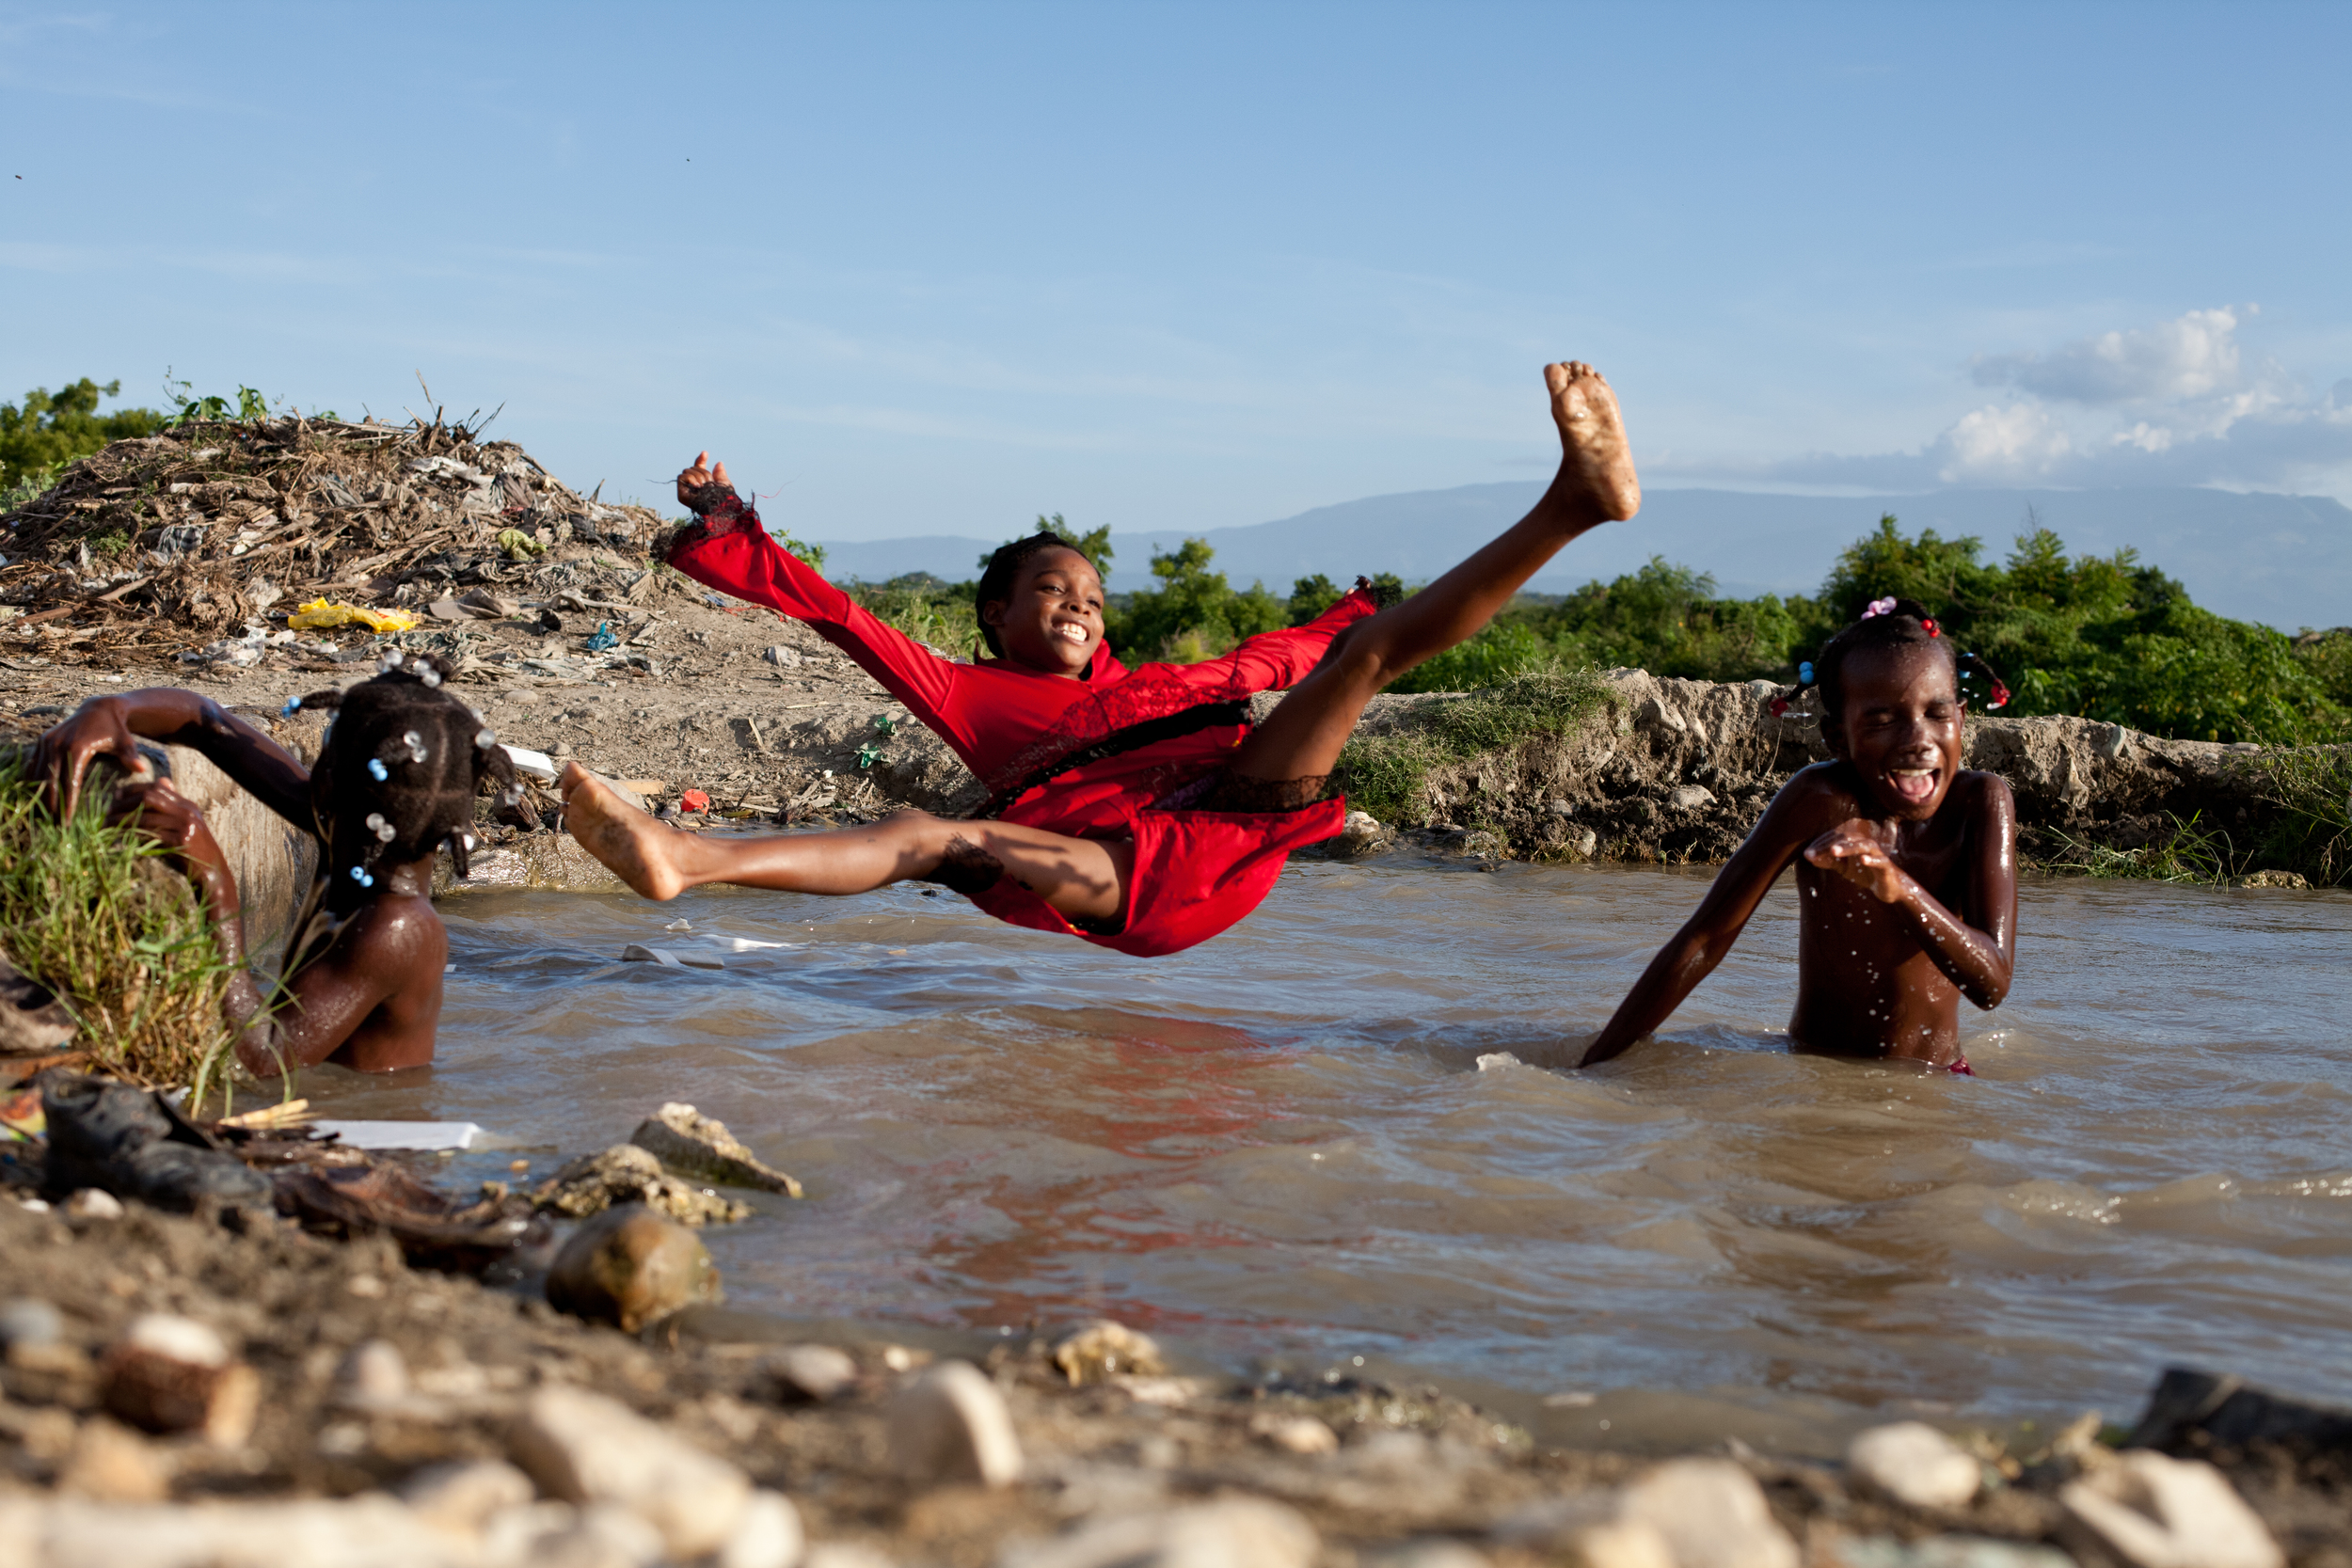 ​Girls from a Haitian sugar cane farming community play in a dirty irrigation ditch at sunset near Barahona, Dominican Republic.